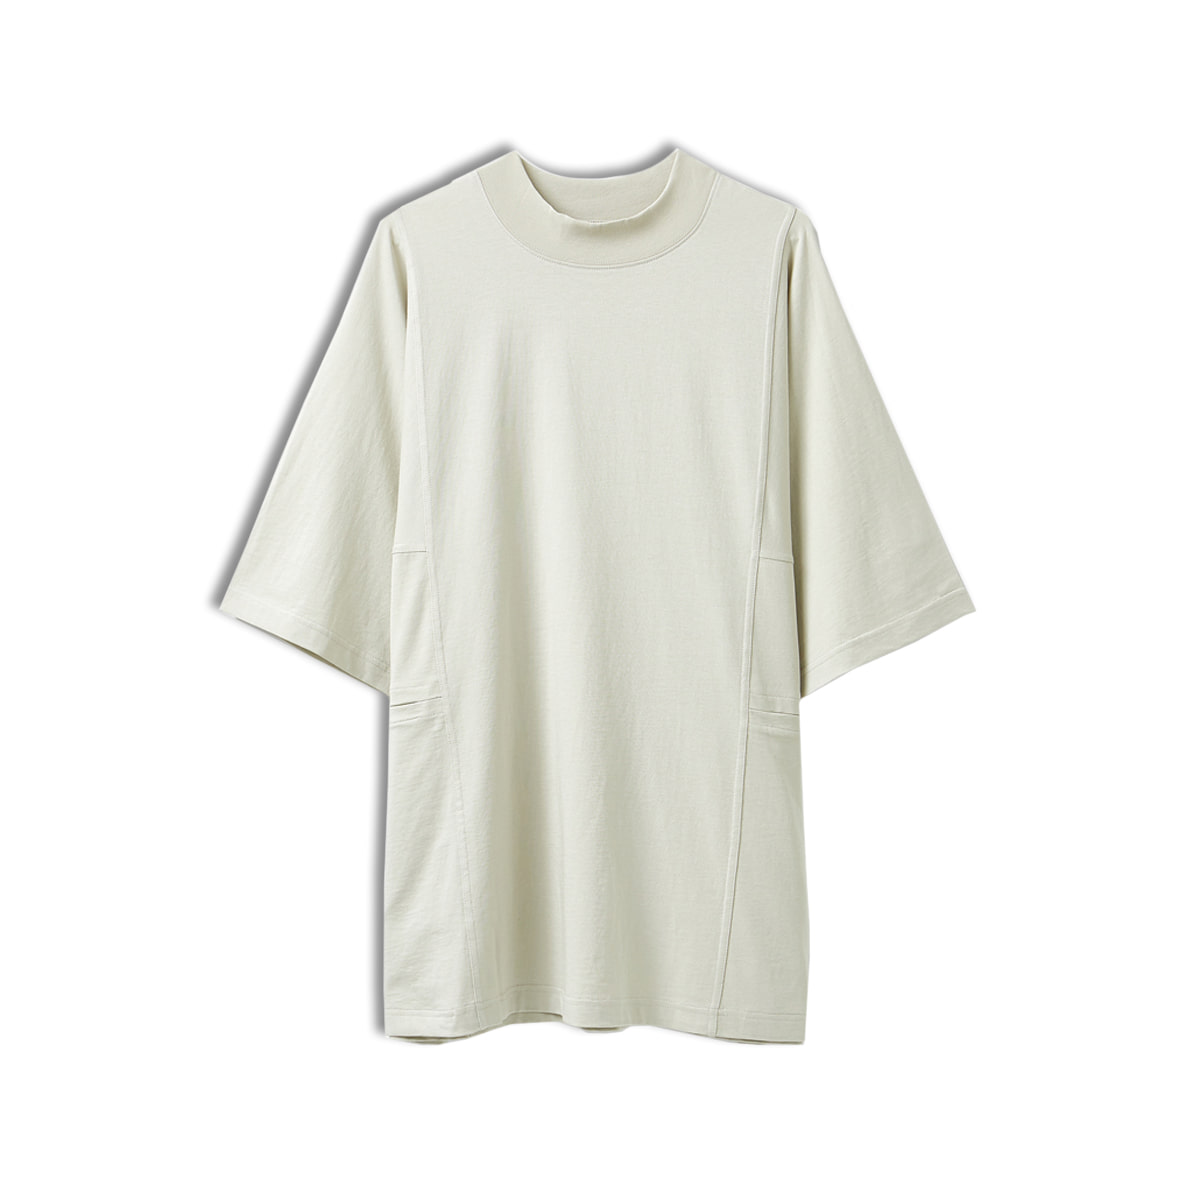 [YOUTH] MOCK NECK T-SHIRT 'LIGHT BEIGE'